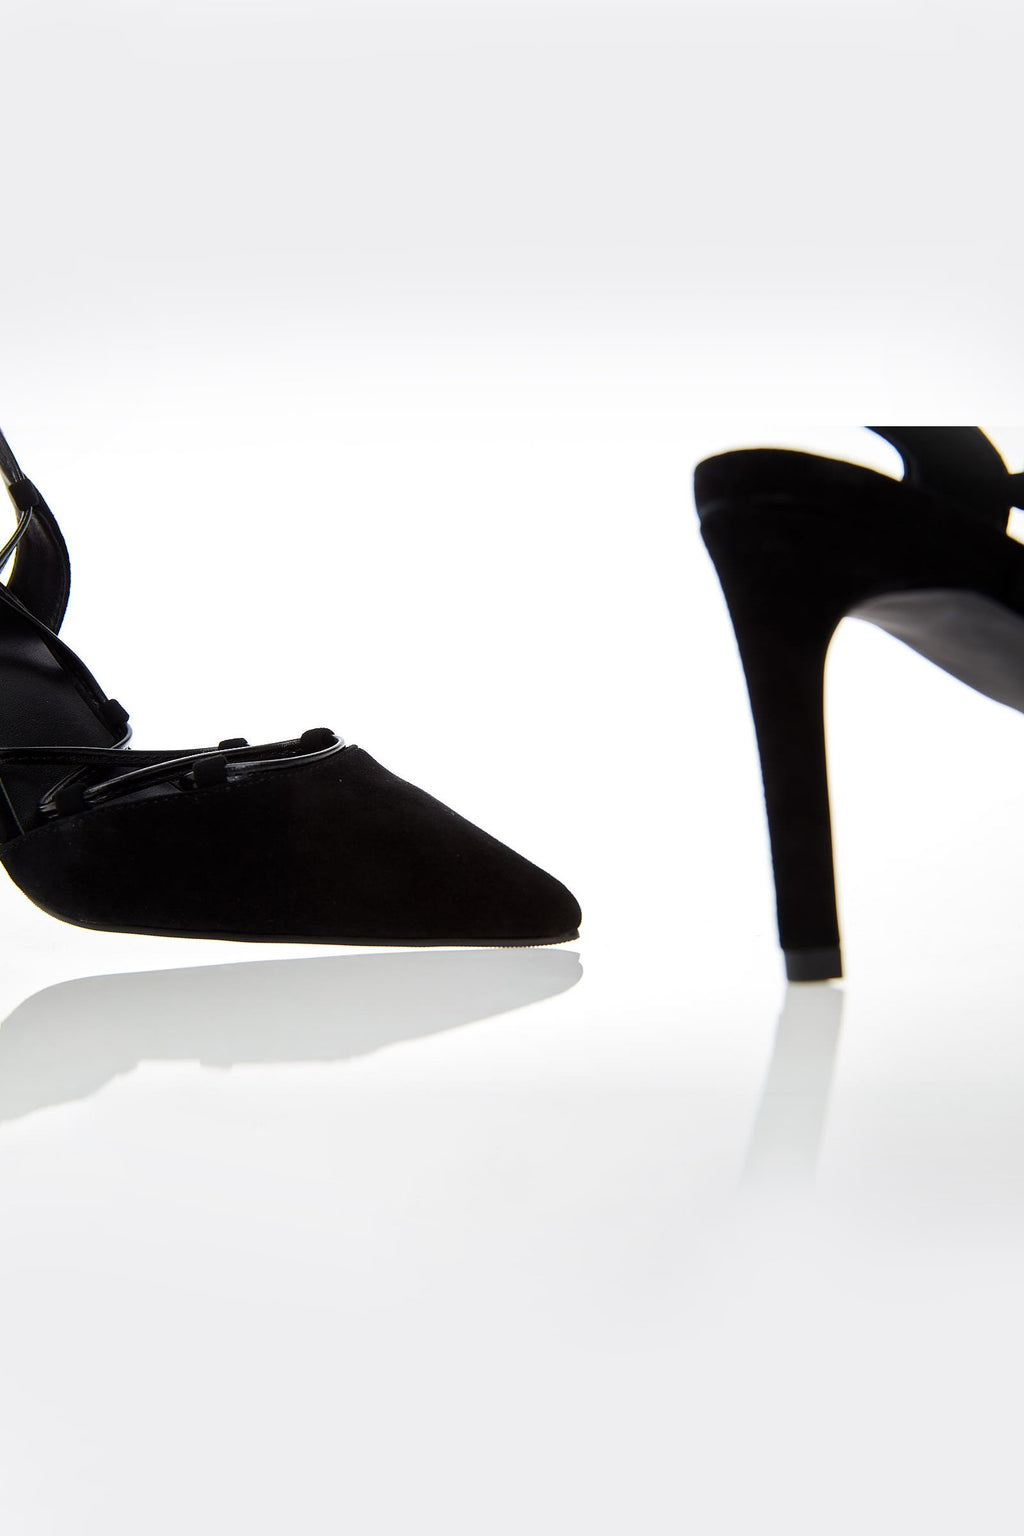 Sonia Lace Up Pumps in SHOES by J.ING - an L.A based women's fashion line